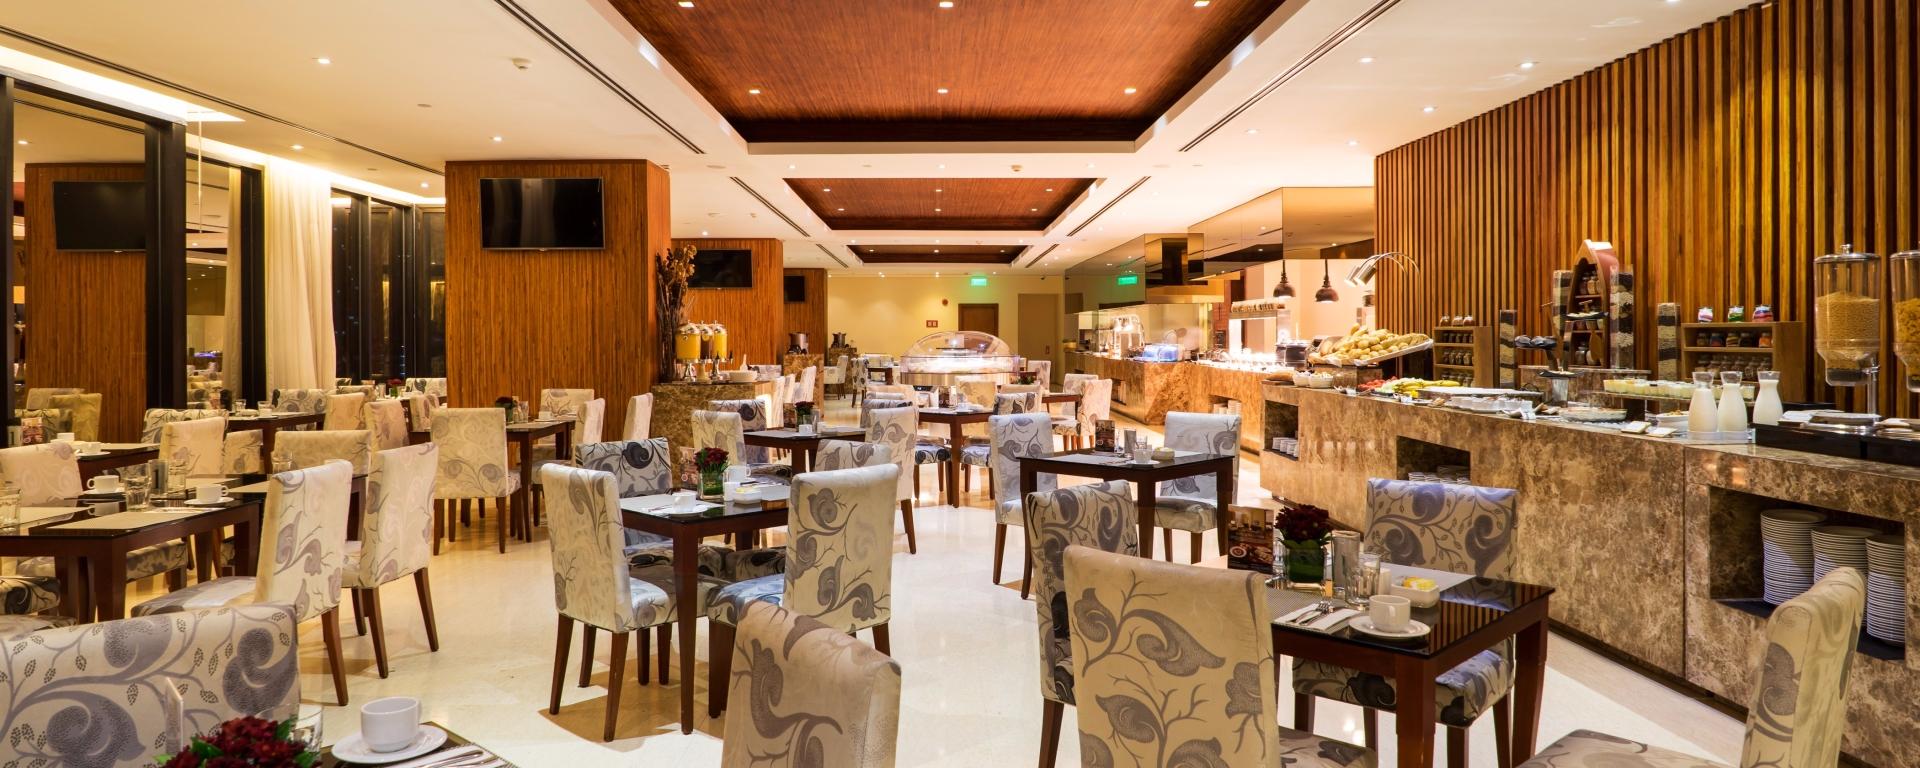 A Taste of Japan at Spice Café of City Garden Grand Hotel – What To ...